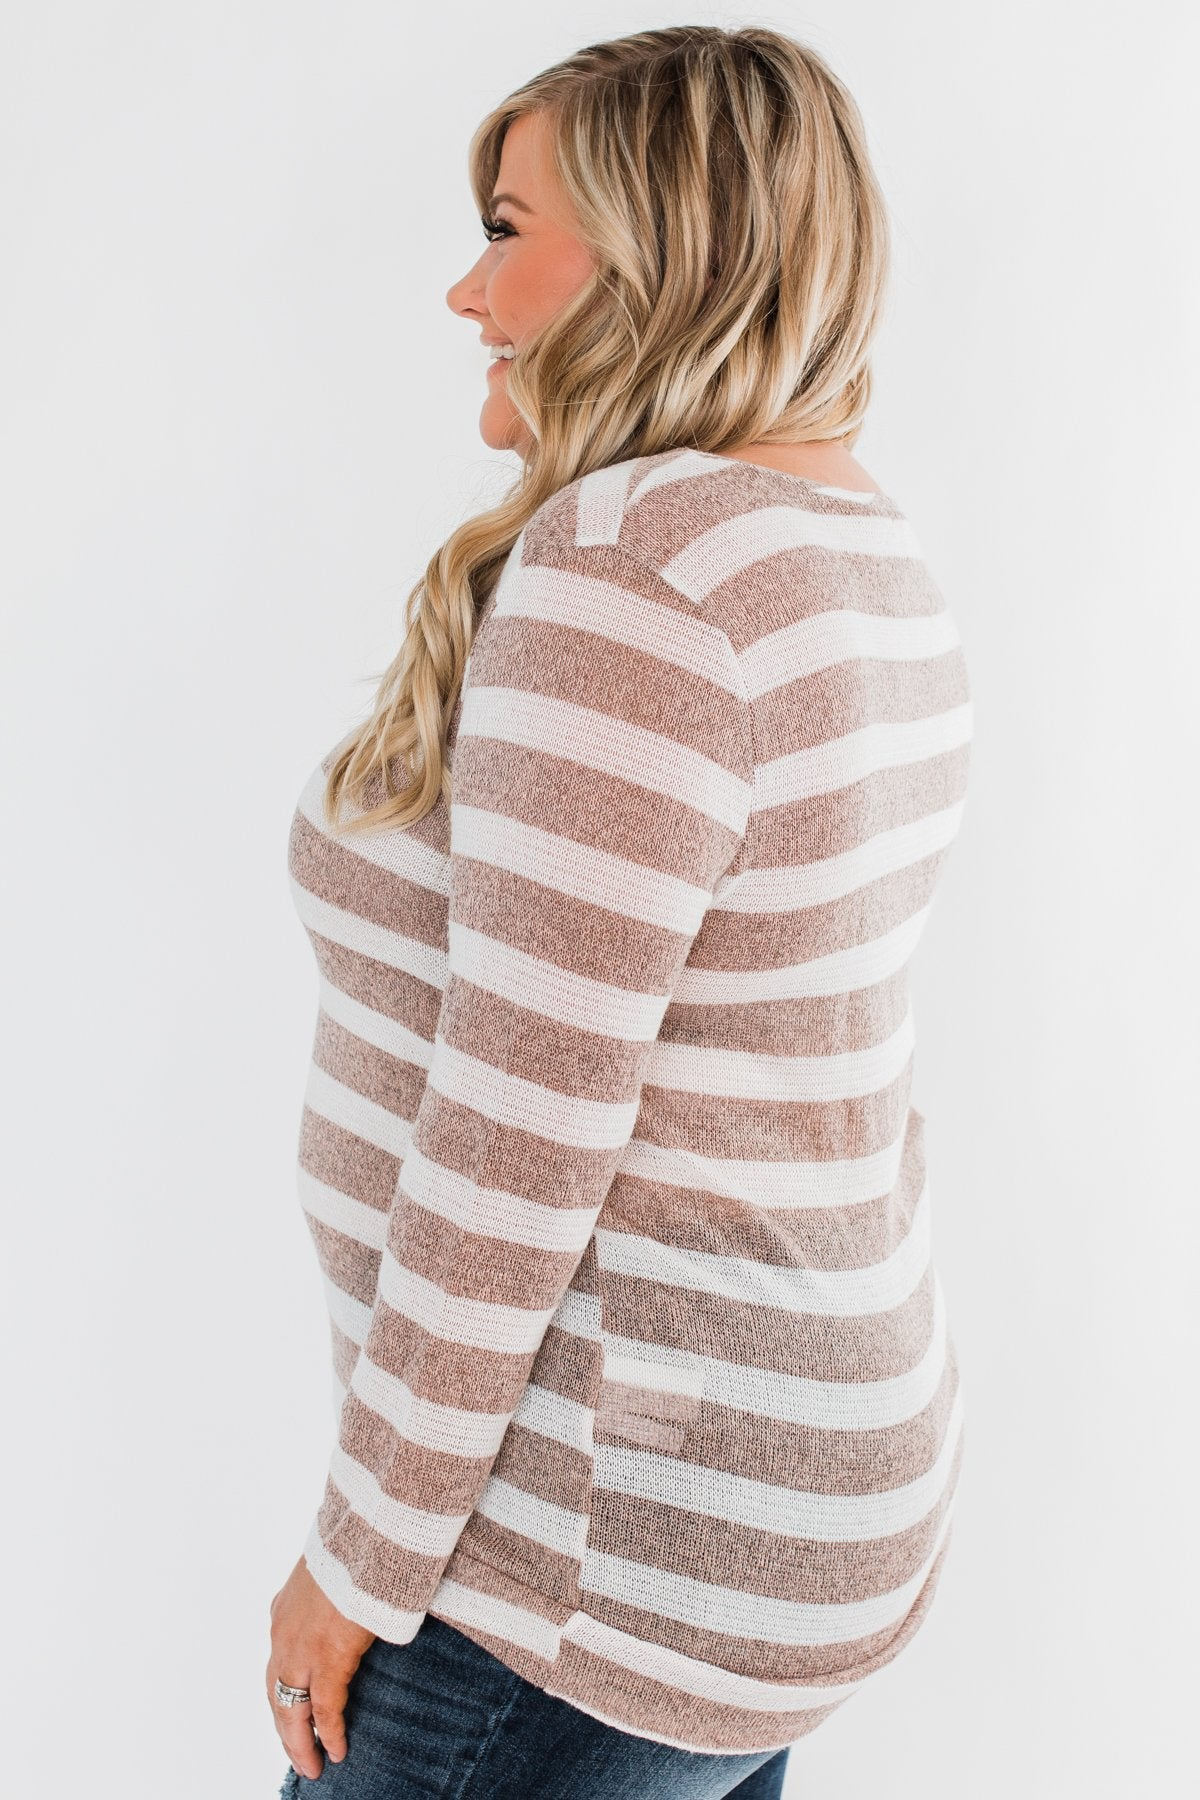 Just As You Are Striped Knit Top- Taupe